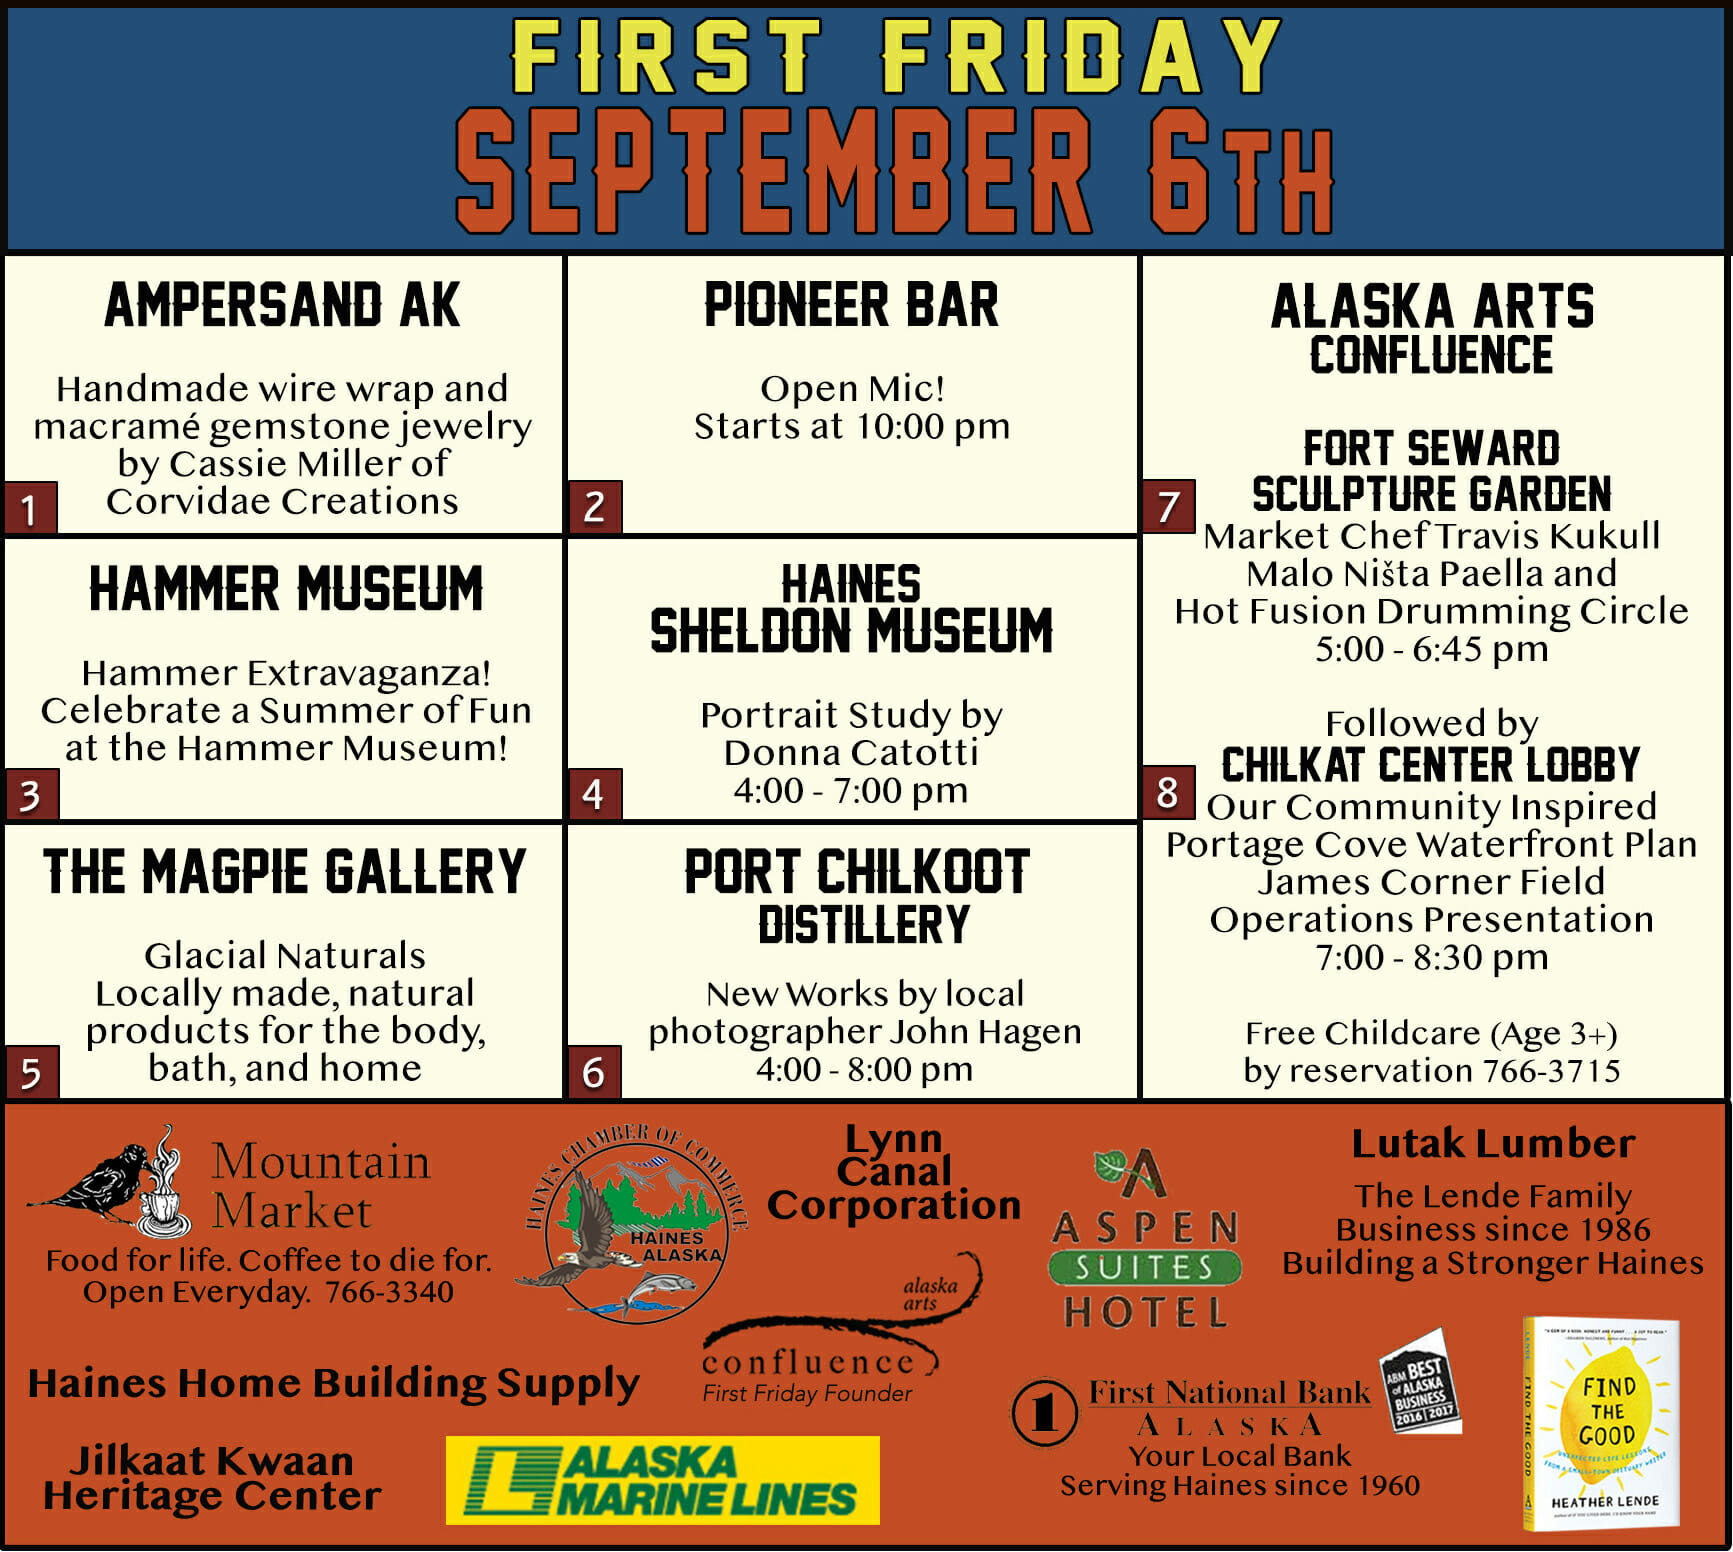 First Friday September 6, 2019